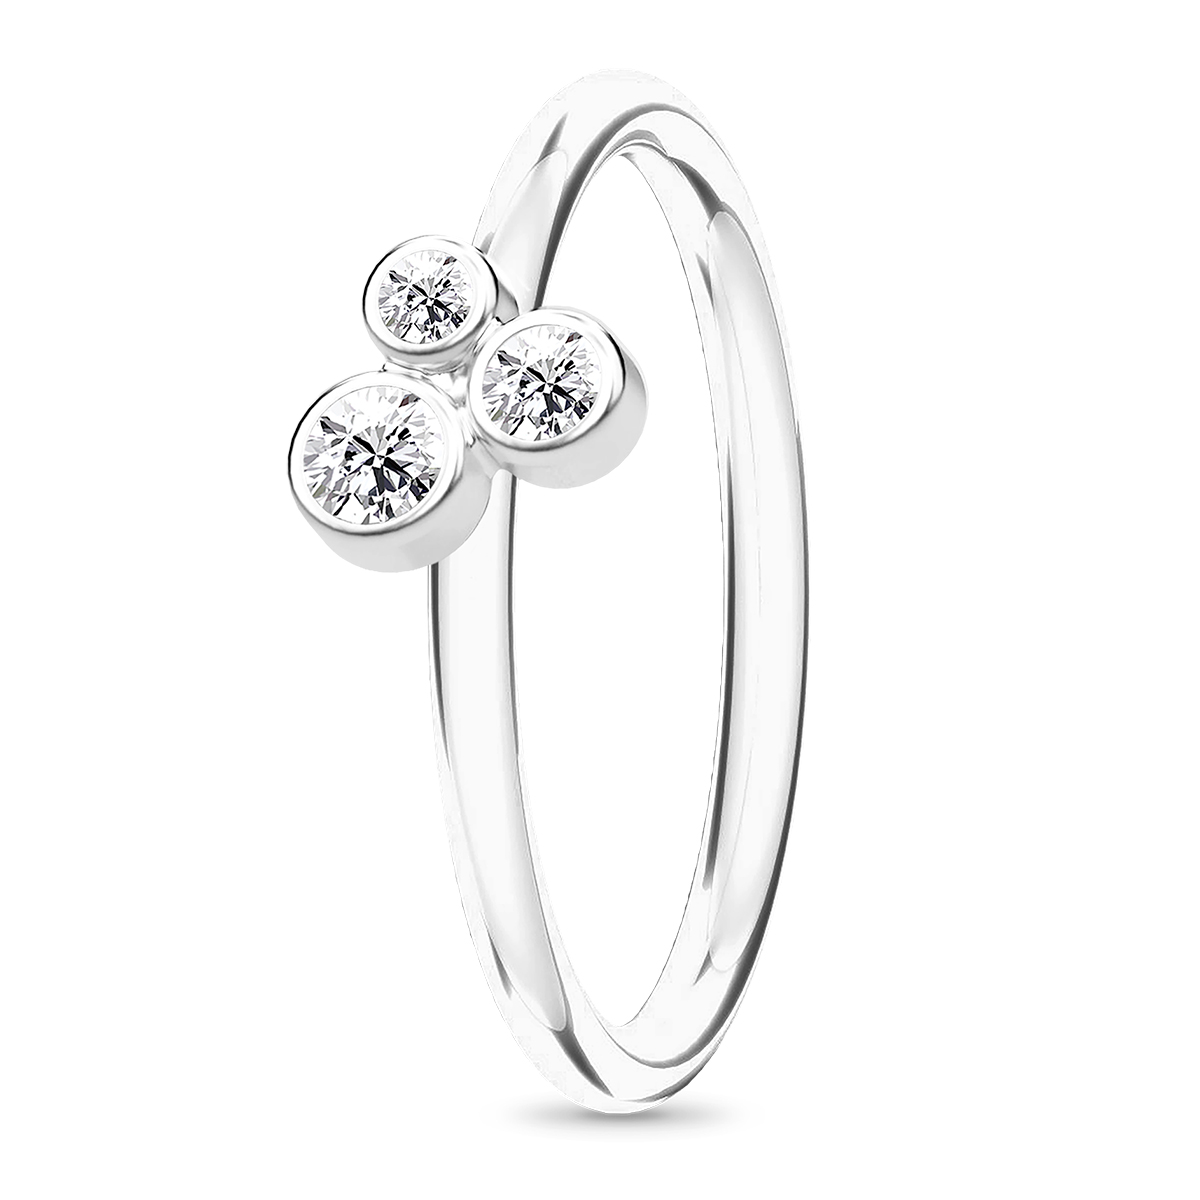 Image of   Spinning Jewelry ring - Oasis - Rhodineret sterlingsølv